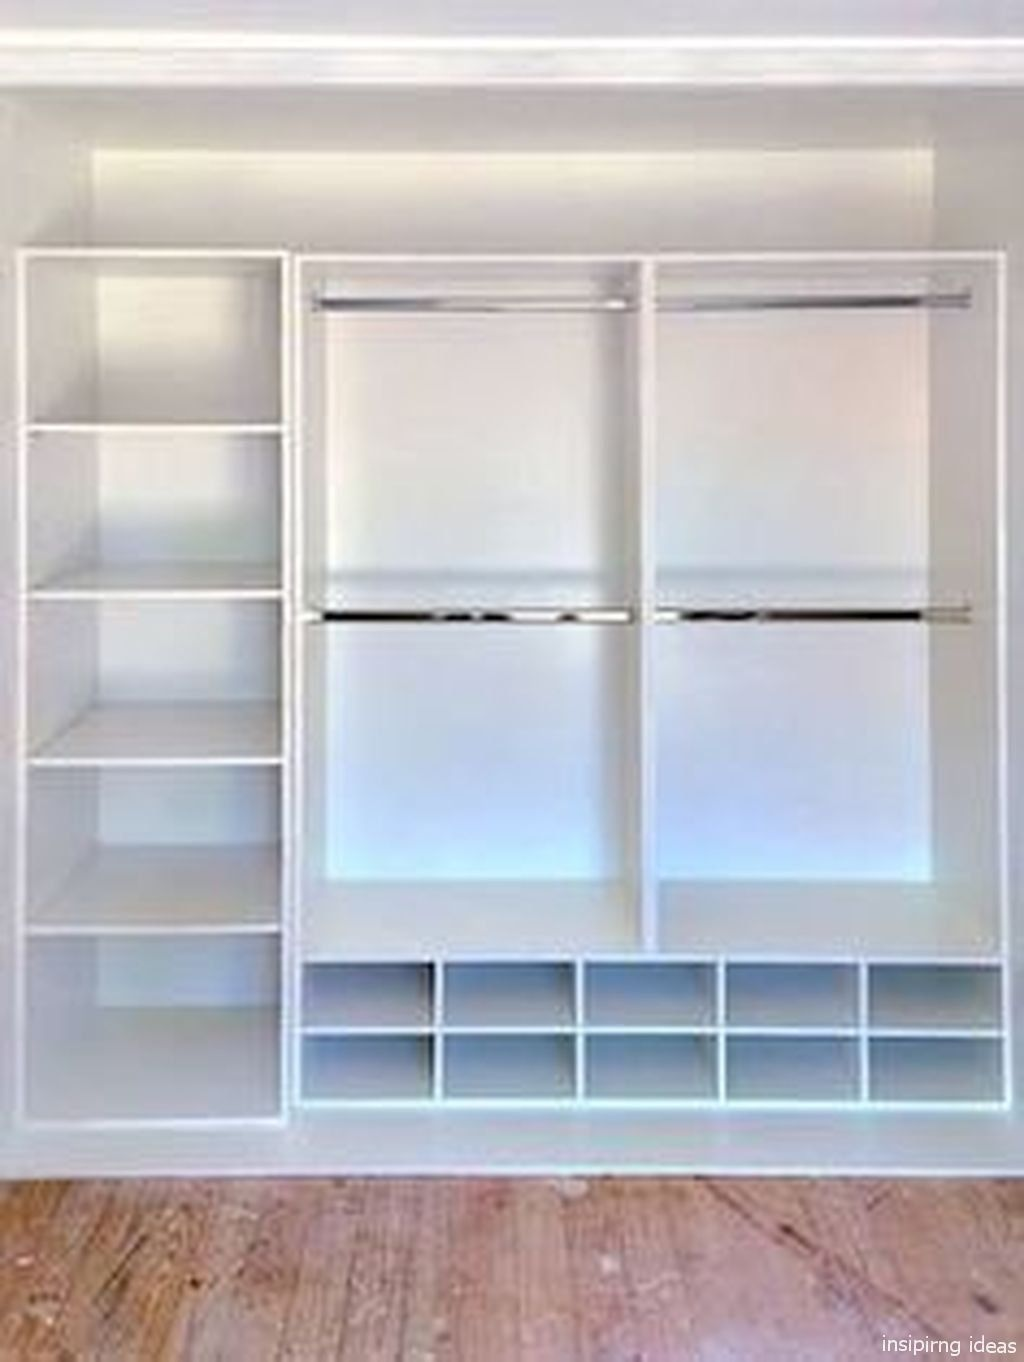 new walk in closet ideas and designs that you must know perfect bathroom pinterest design contemporary bedroom also rh